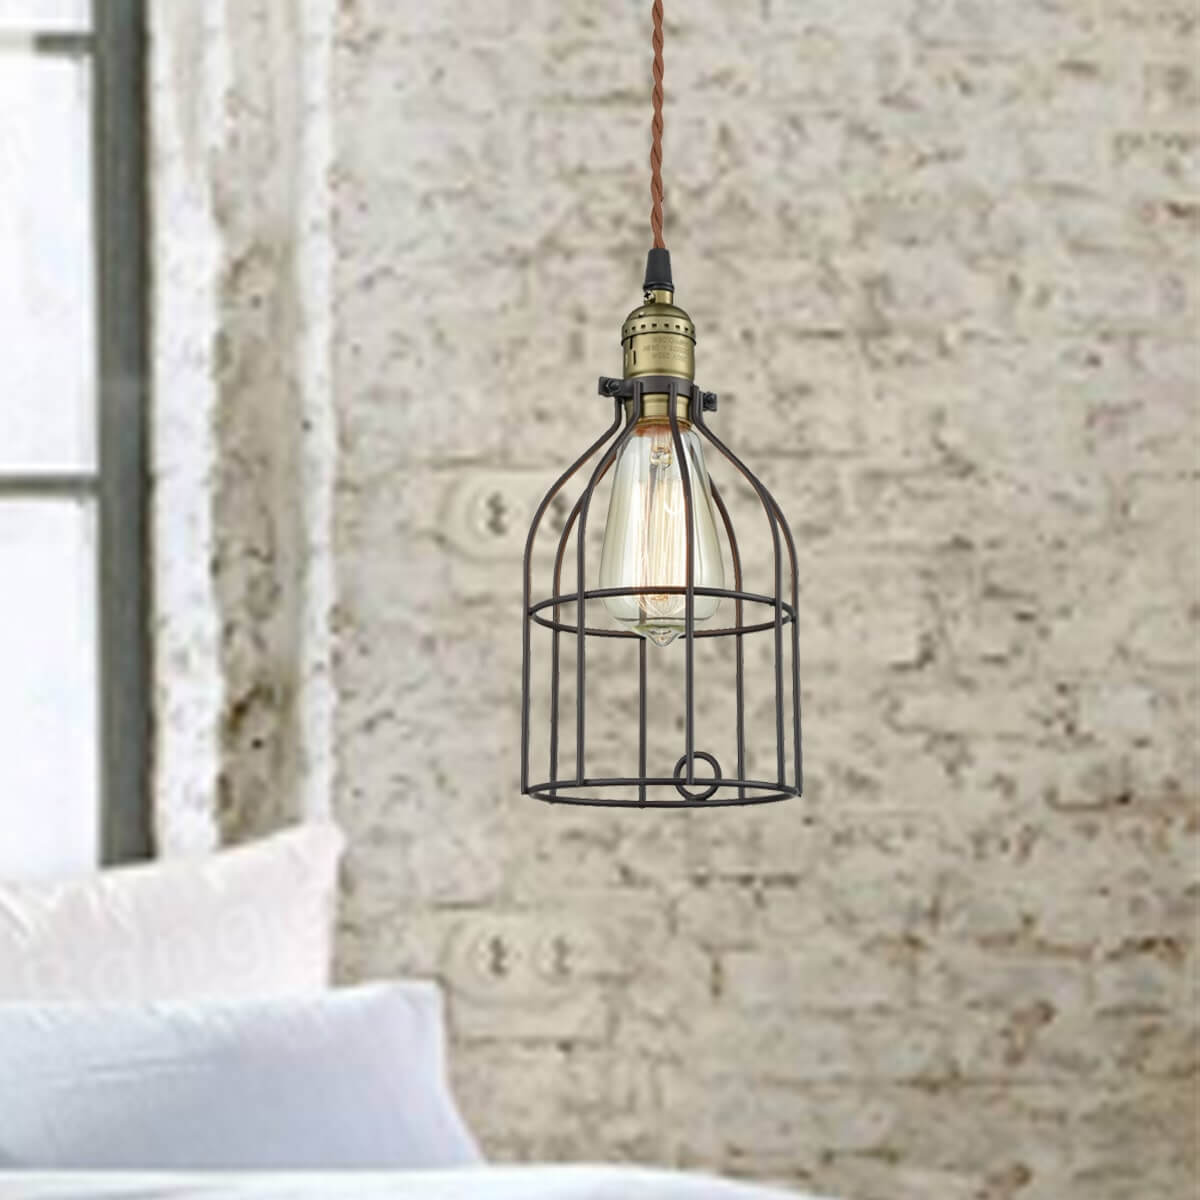 Oil Rubbed Bronze Industrial Plug In Pendant Light Bird Cage Shade